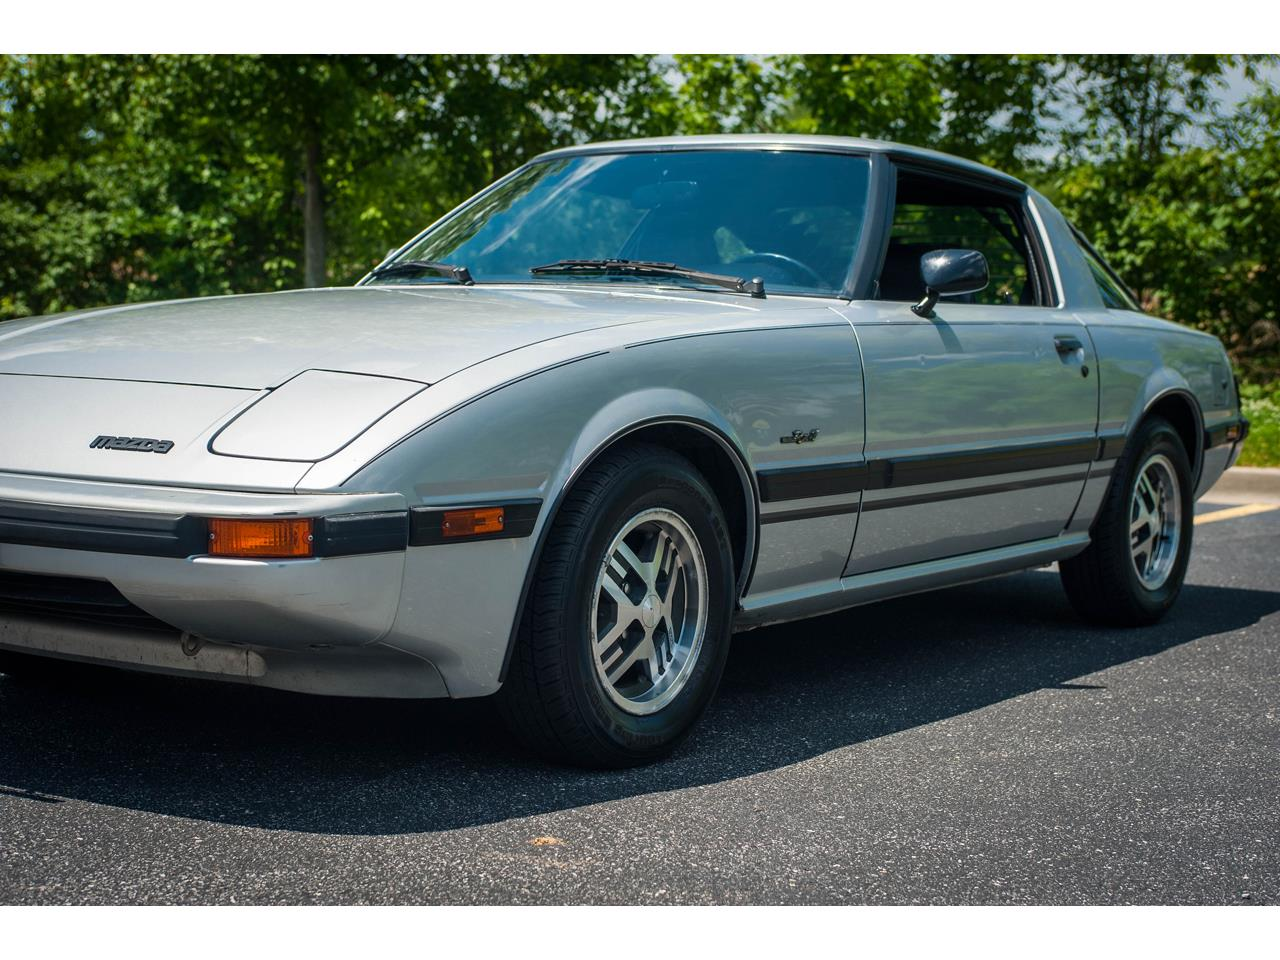 Large Picture of '82 Mazda RX-7 Offered by Gateway Classic Cars - St. Louis - QB9V